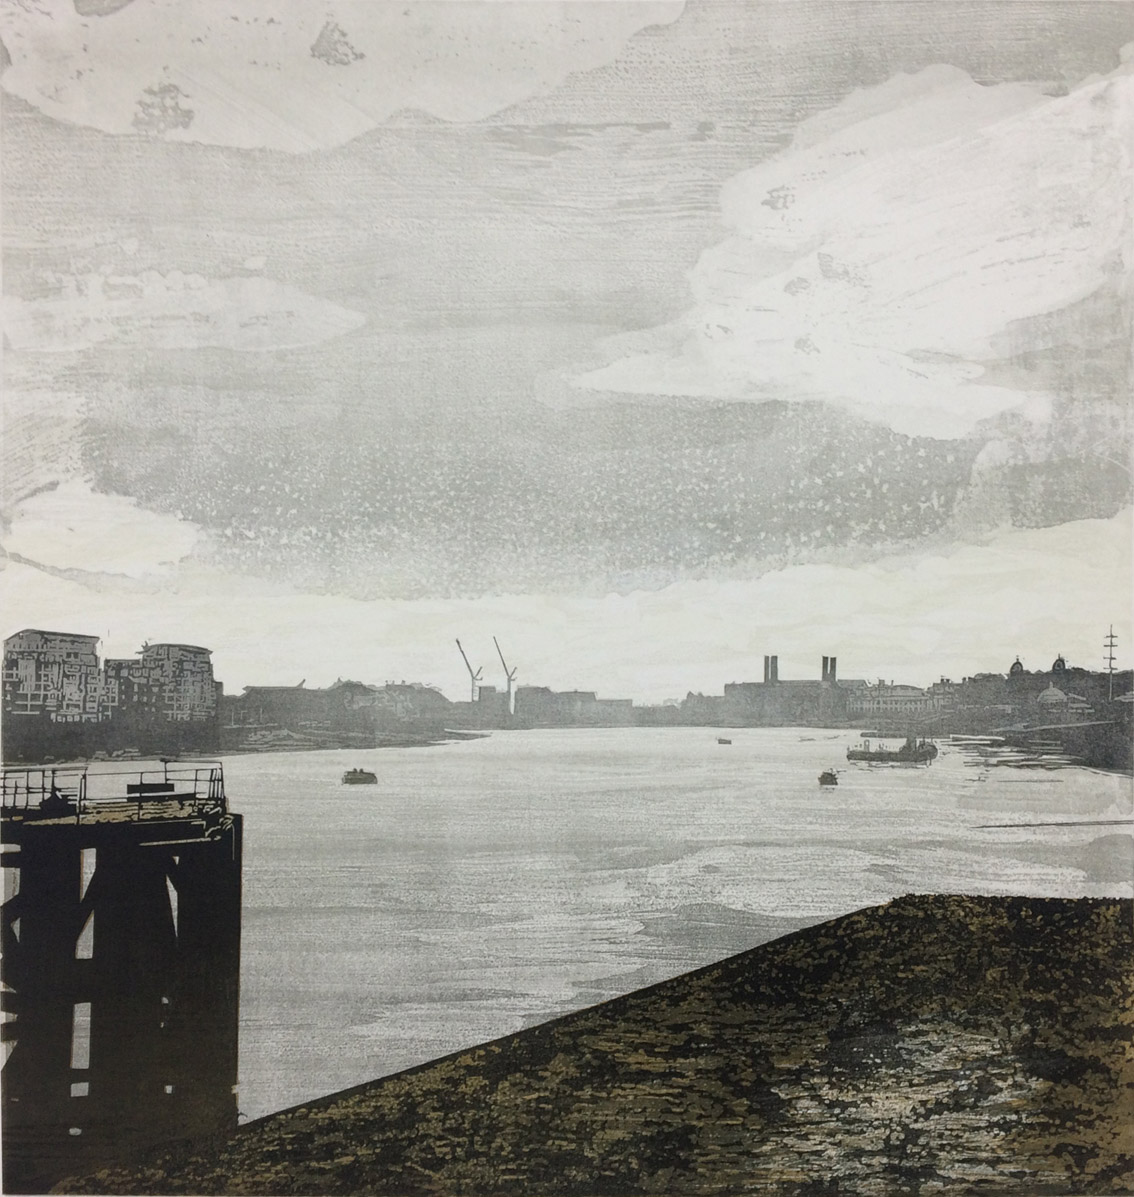 Artwork - Dockyard - East etched and cut lino Print | Steve Edwards - etched and cut lino